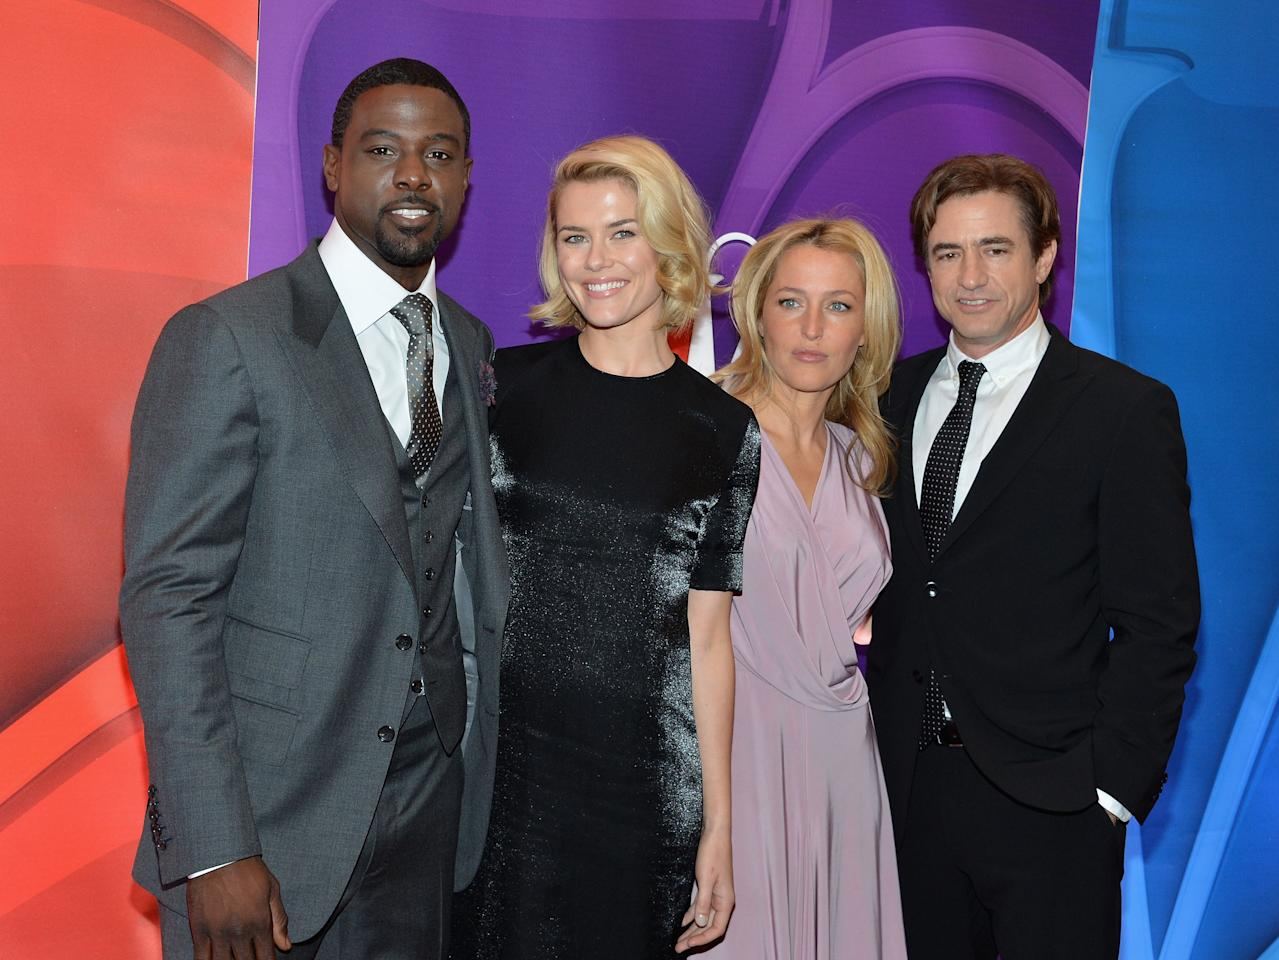 NEW YORK, NY - MAY 13: (L-R) Actors Lance Gross, Rachael Taylor, Gillian Anderson and Dermot Mulroney attend 2013 NBC Upfront Presentation Red Carpet Event at Radio City Music Hall on May 13, 2013 in New York City.  (Photo by Slaven Vlasic/Getty Images)